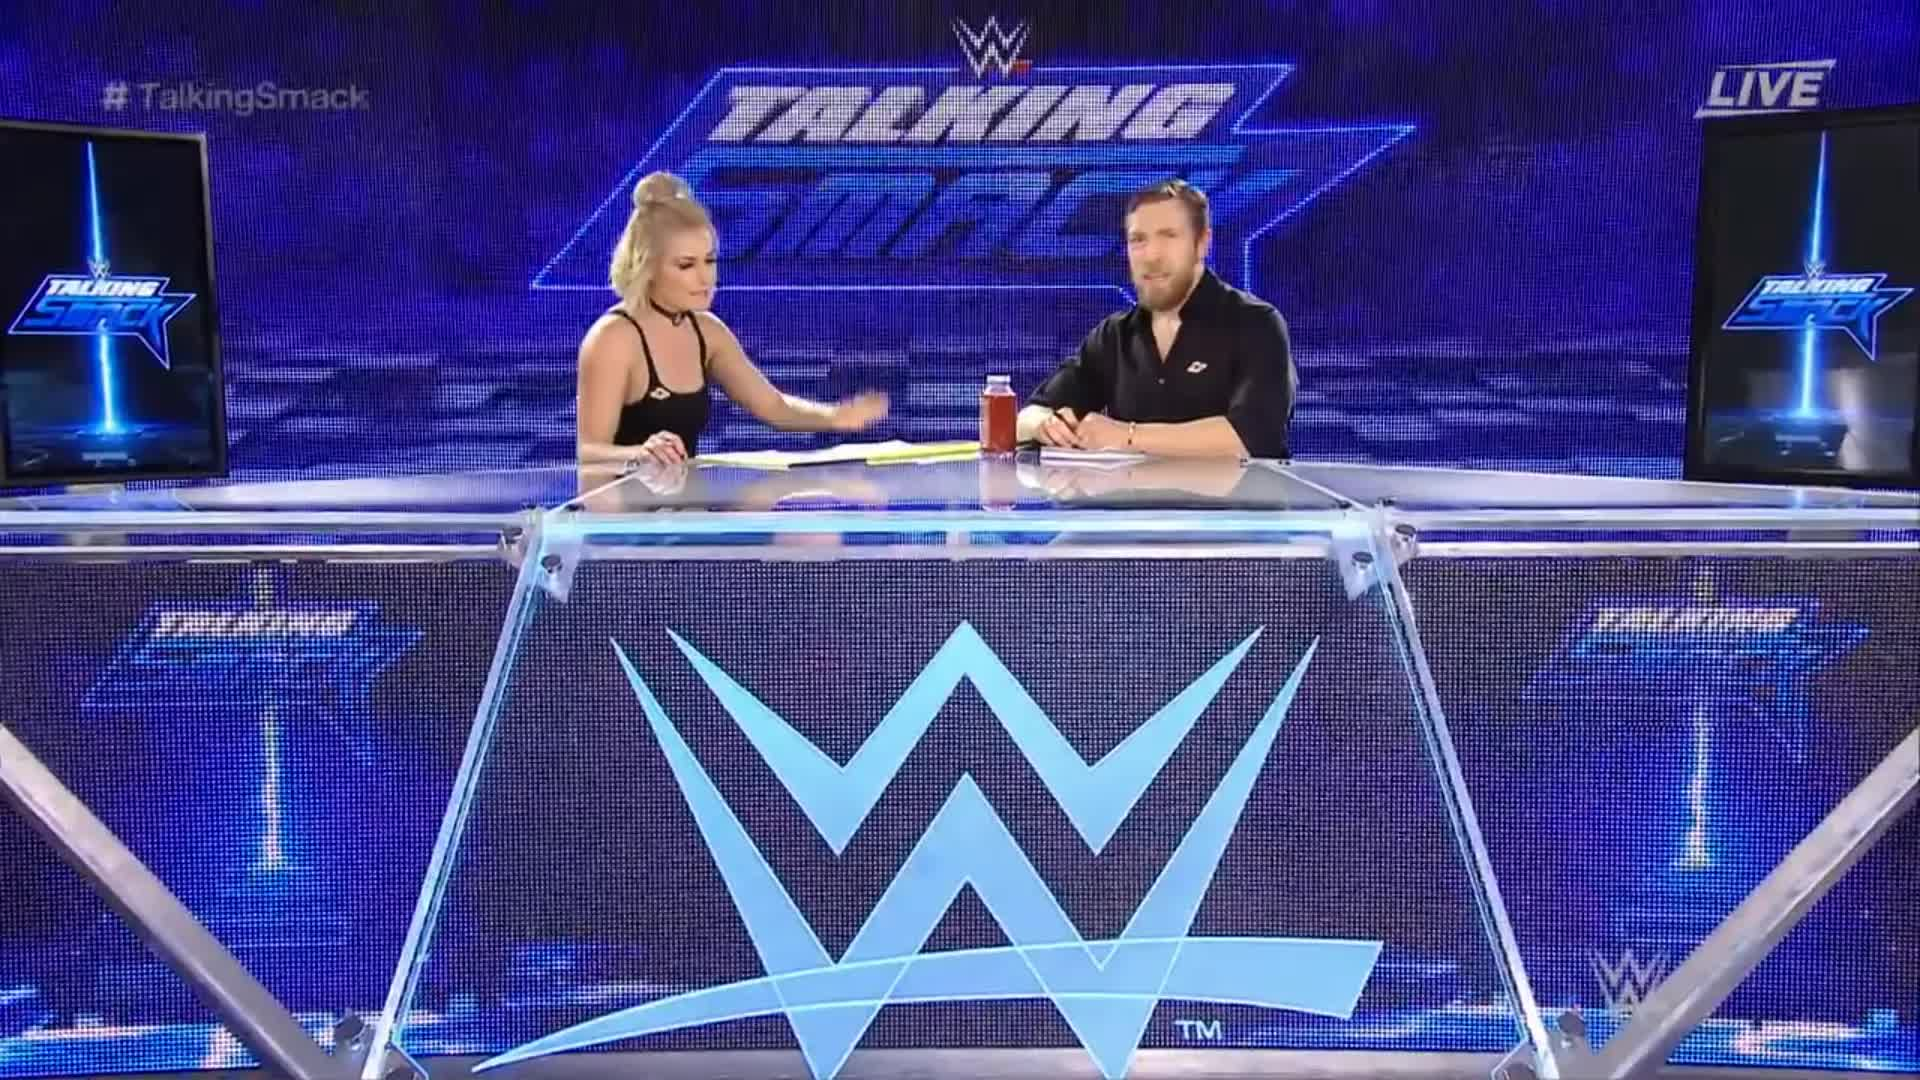 Renee_Young Talking_Smack botch daniel_bryan webm wwe // 1920x1080 // 2.0MB